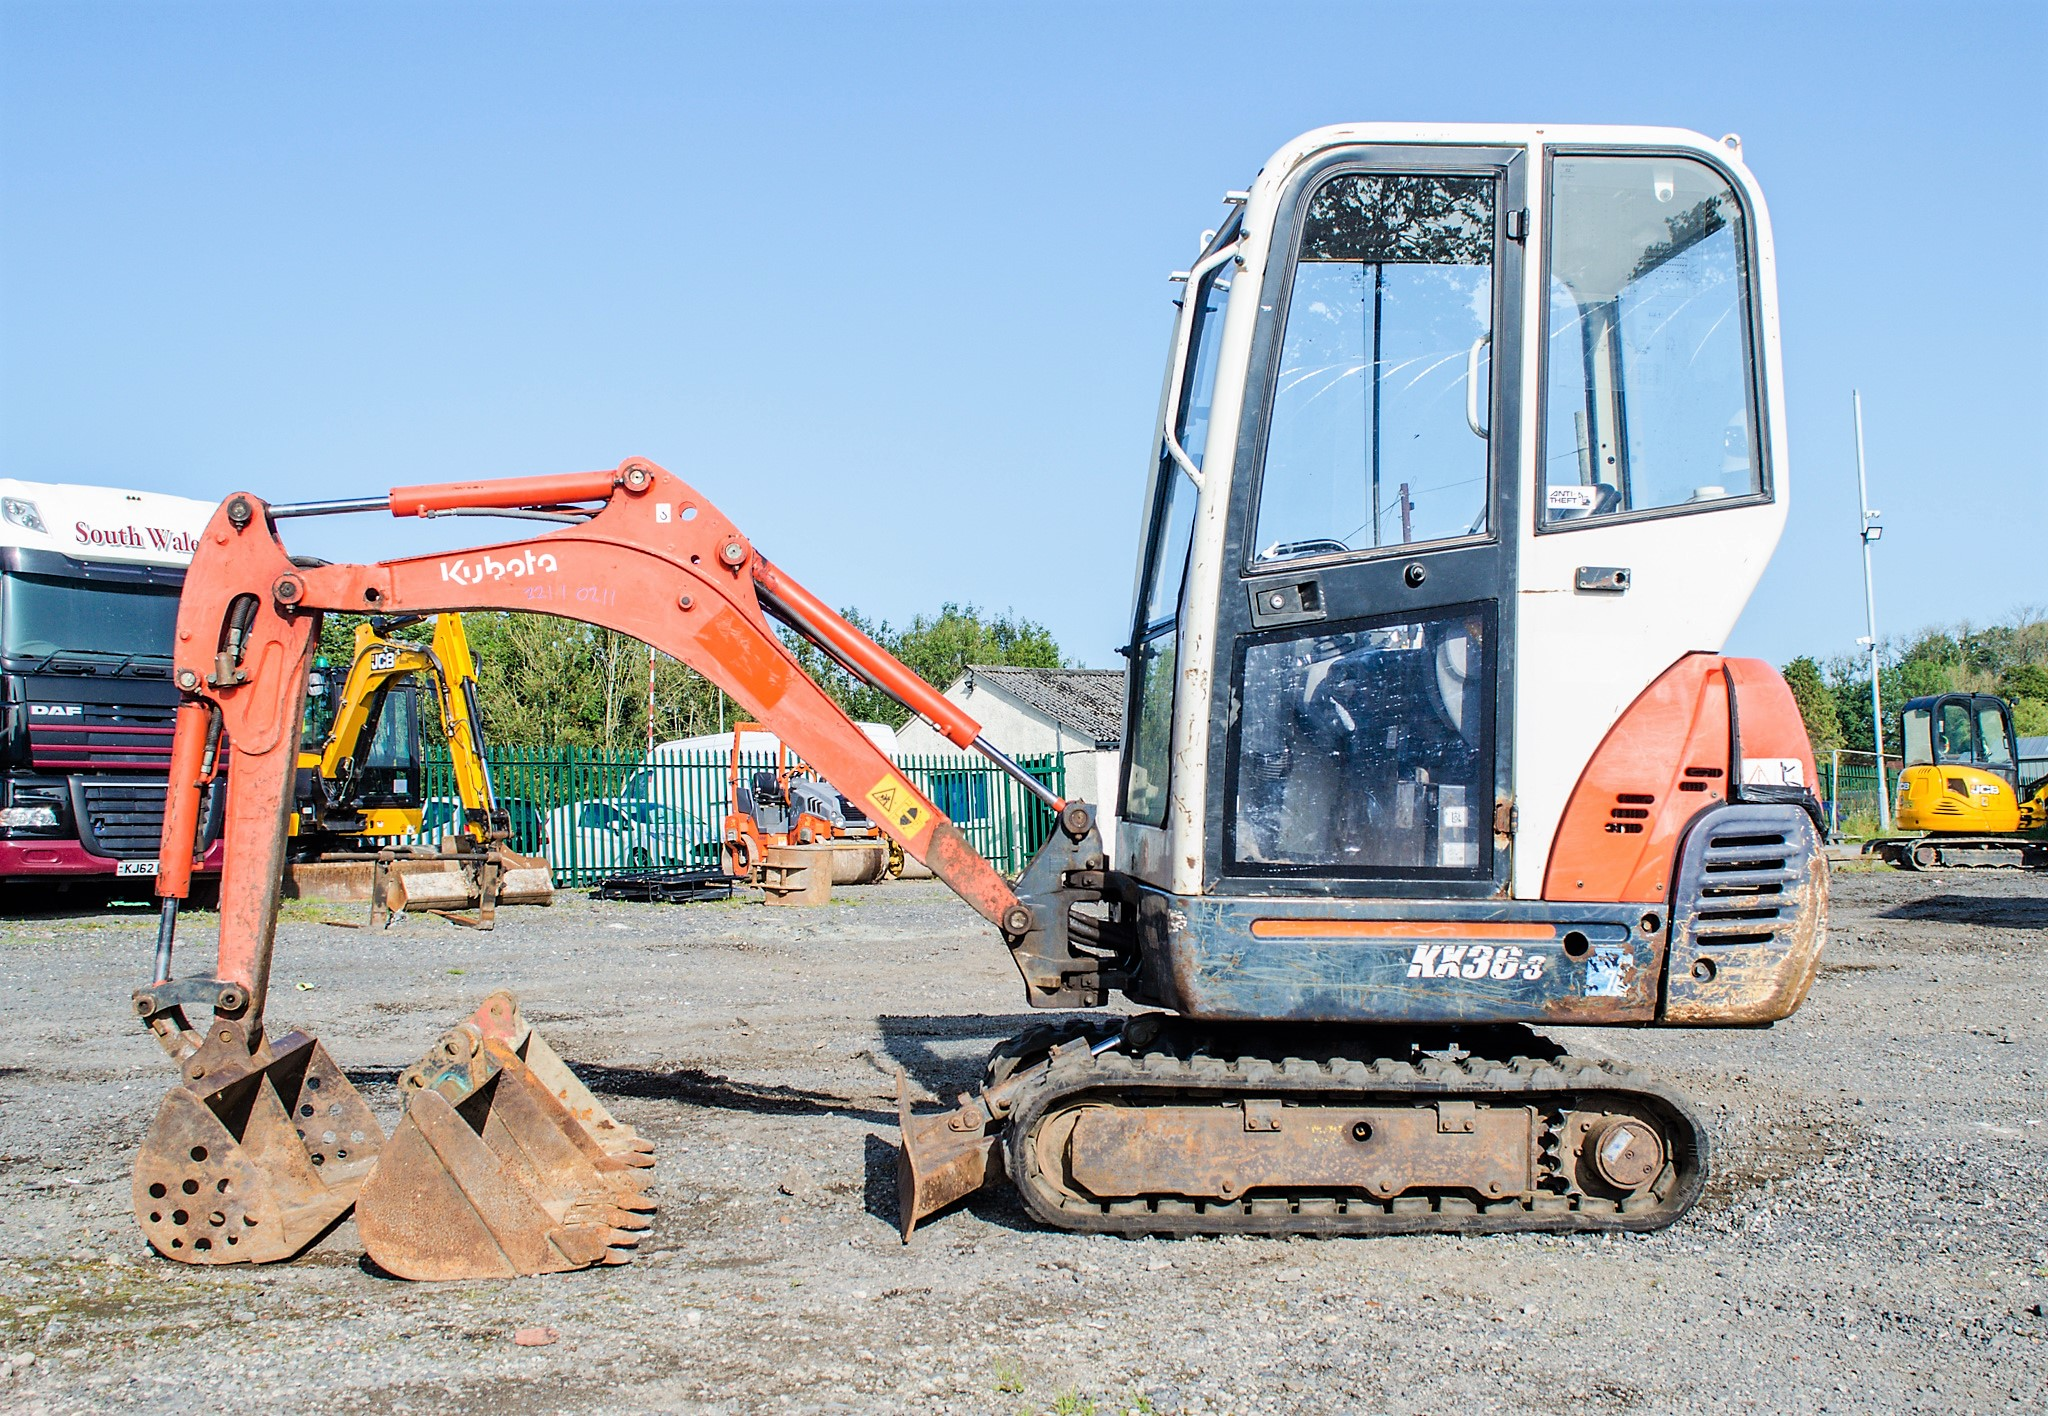 Kubota KX36-3 1.5 tonne rubber tracked mini excavator Year: 2007 S/N: Z077298 Recorded Hours: 4205 - Image 7 of 18